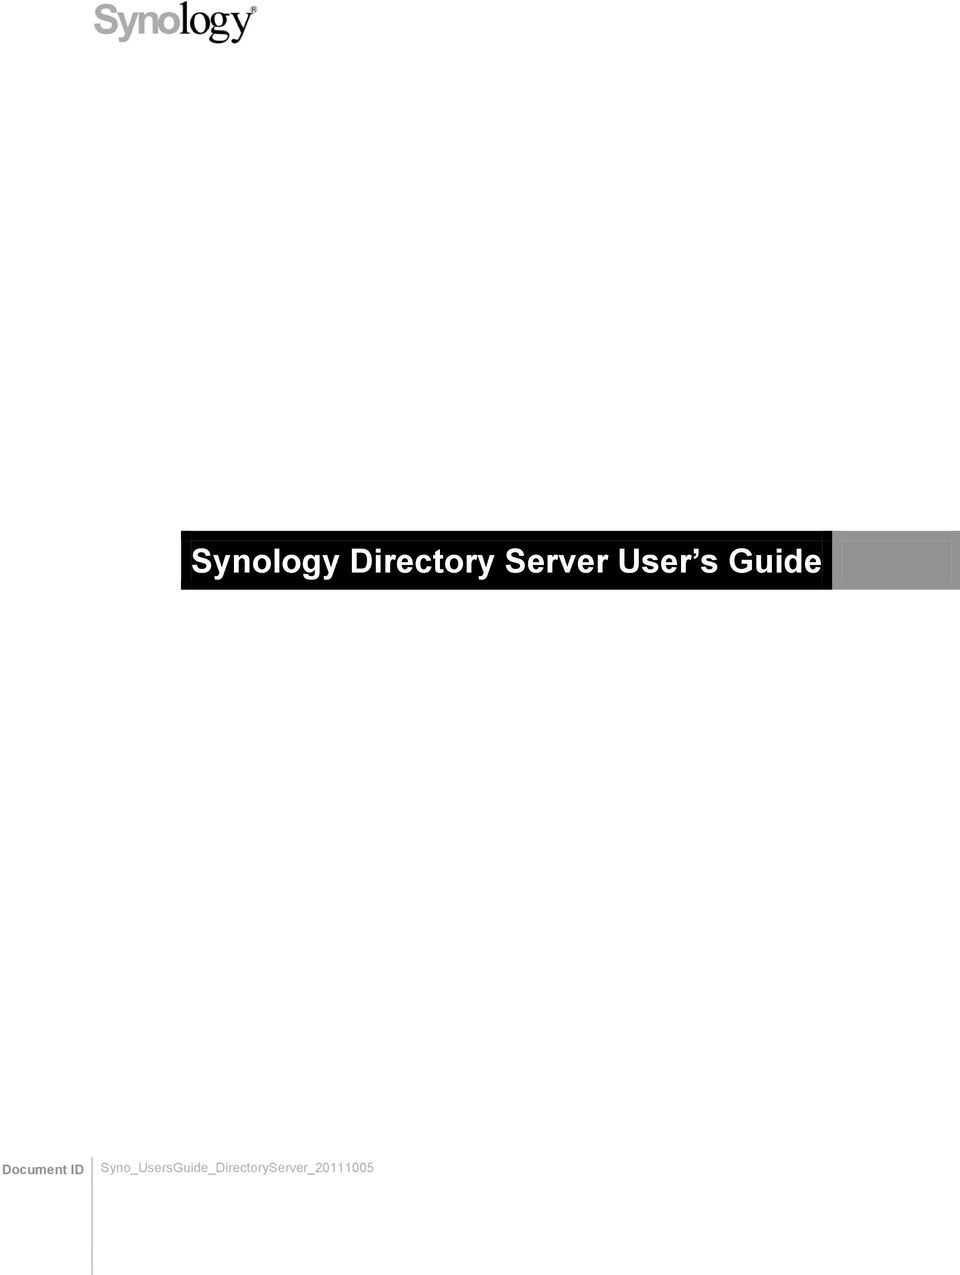 Synology Directory Server User s Guide - PDF